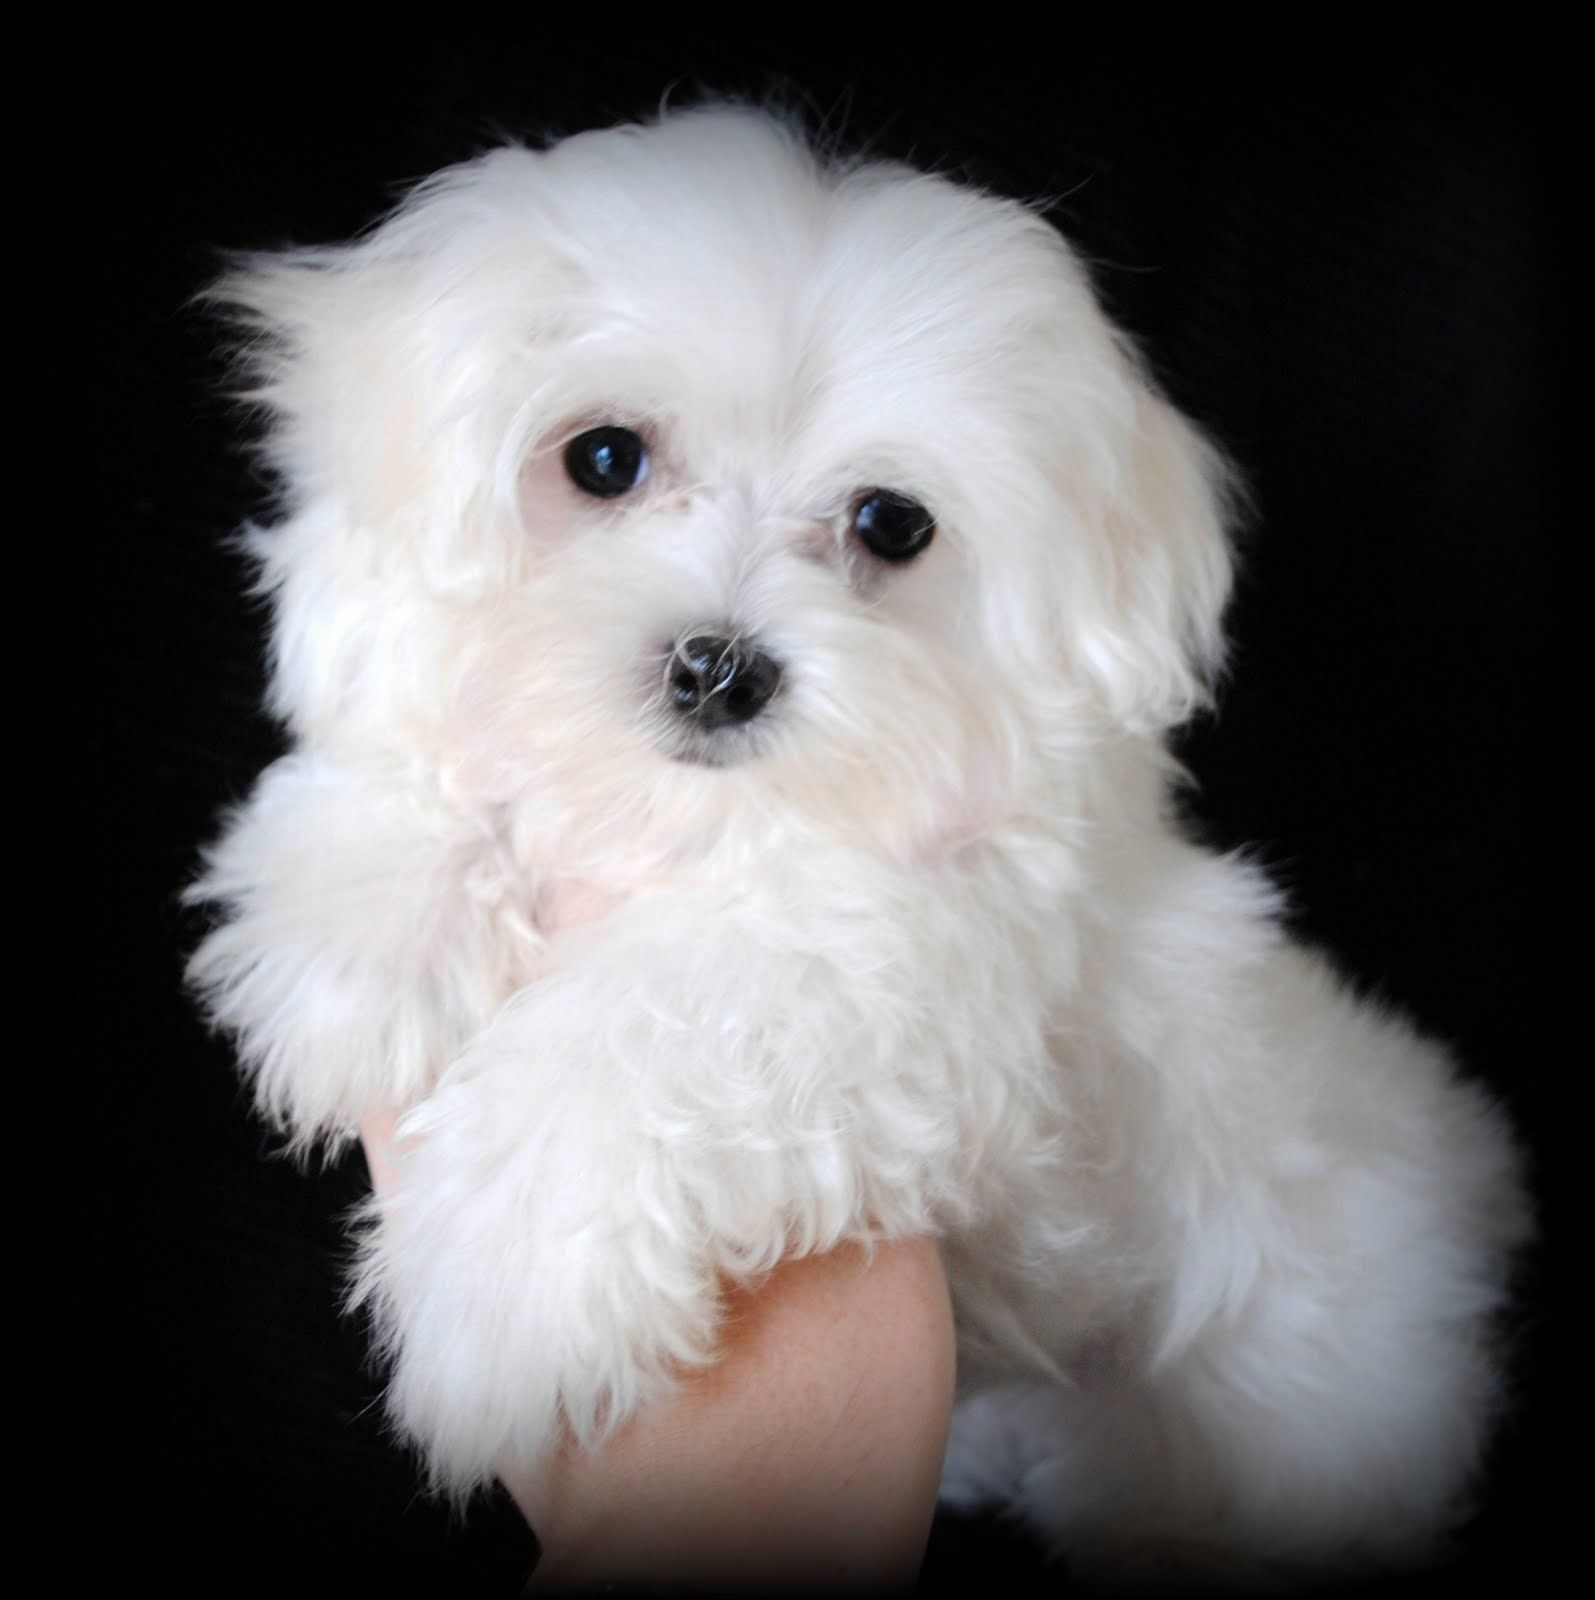 Pin By Shawn On Fur Babies Maltese Puppy Maltese Dogs Teacup Puppies Maltese